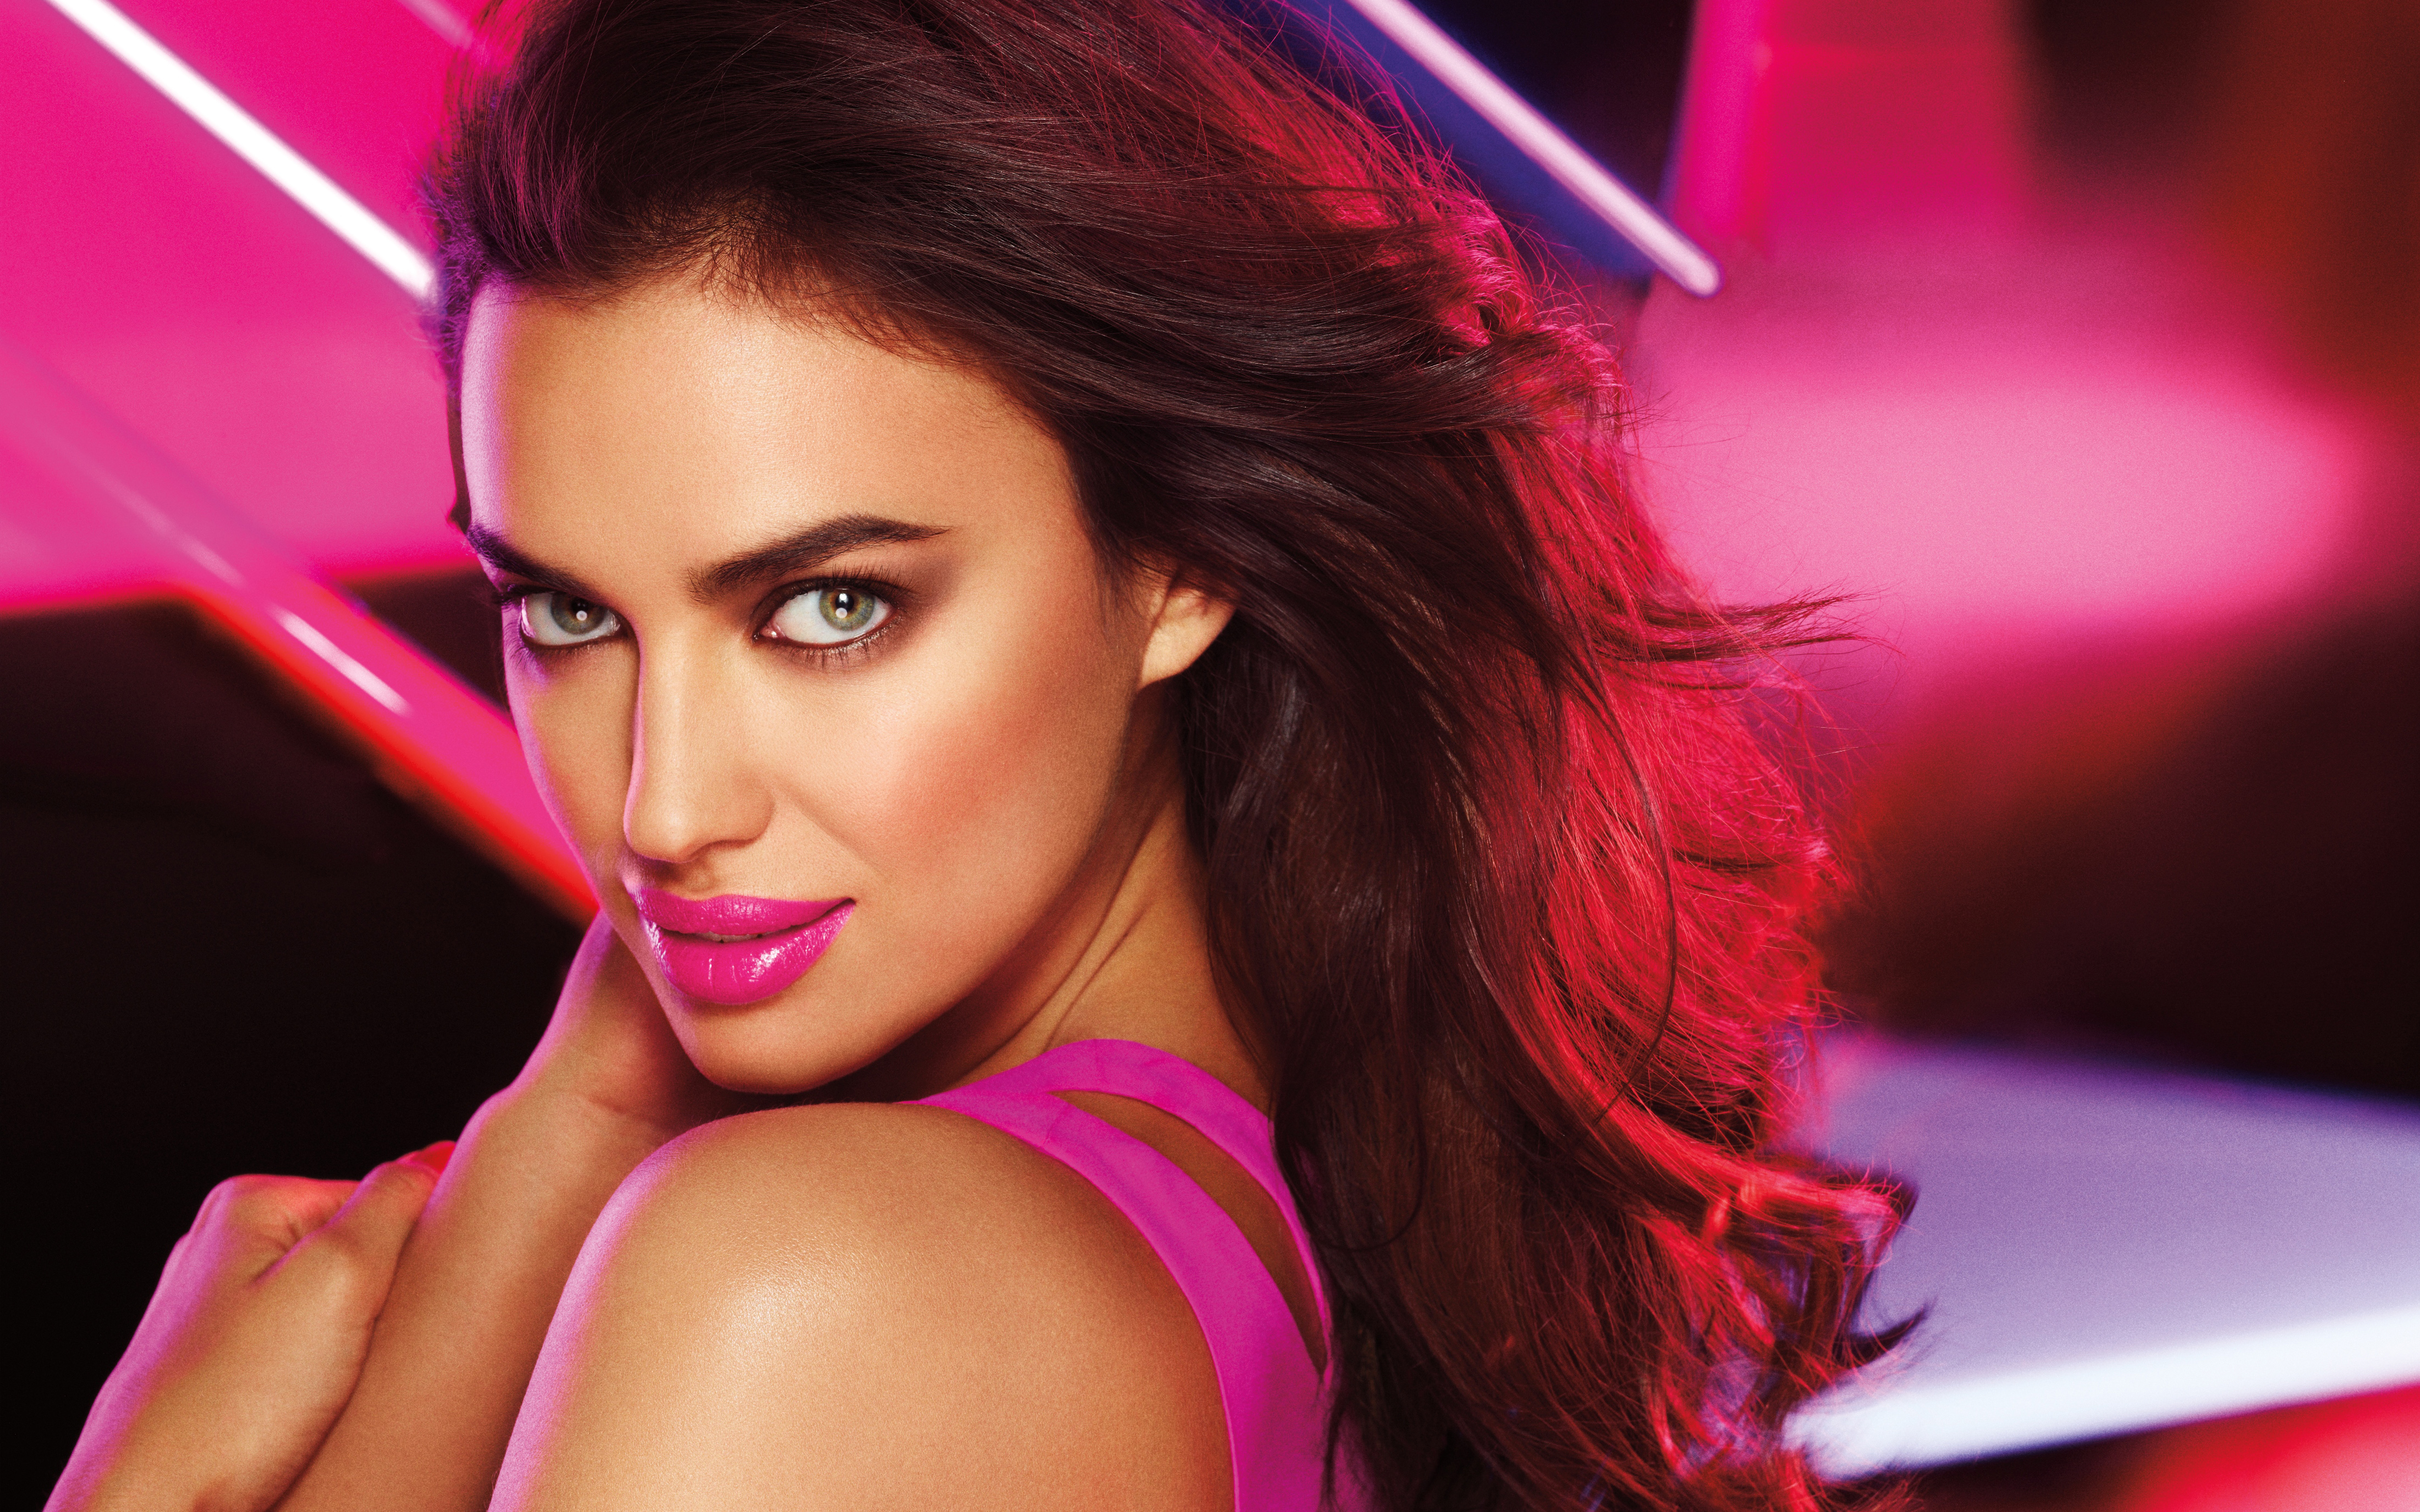 irina shayk 2016 4k, hd celebrities, 4k wallpapers, images